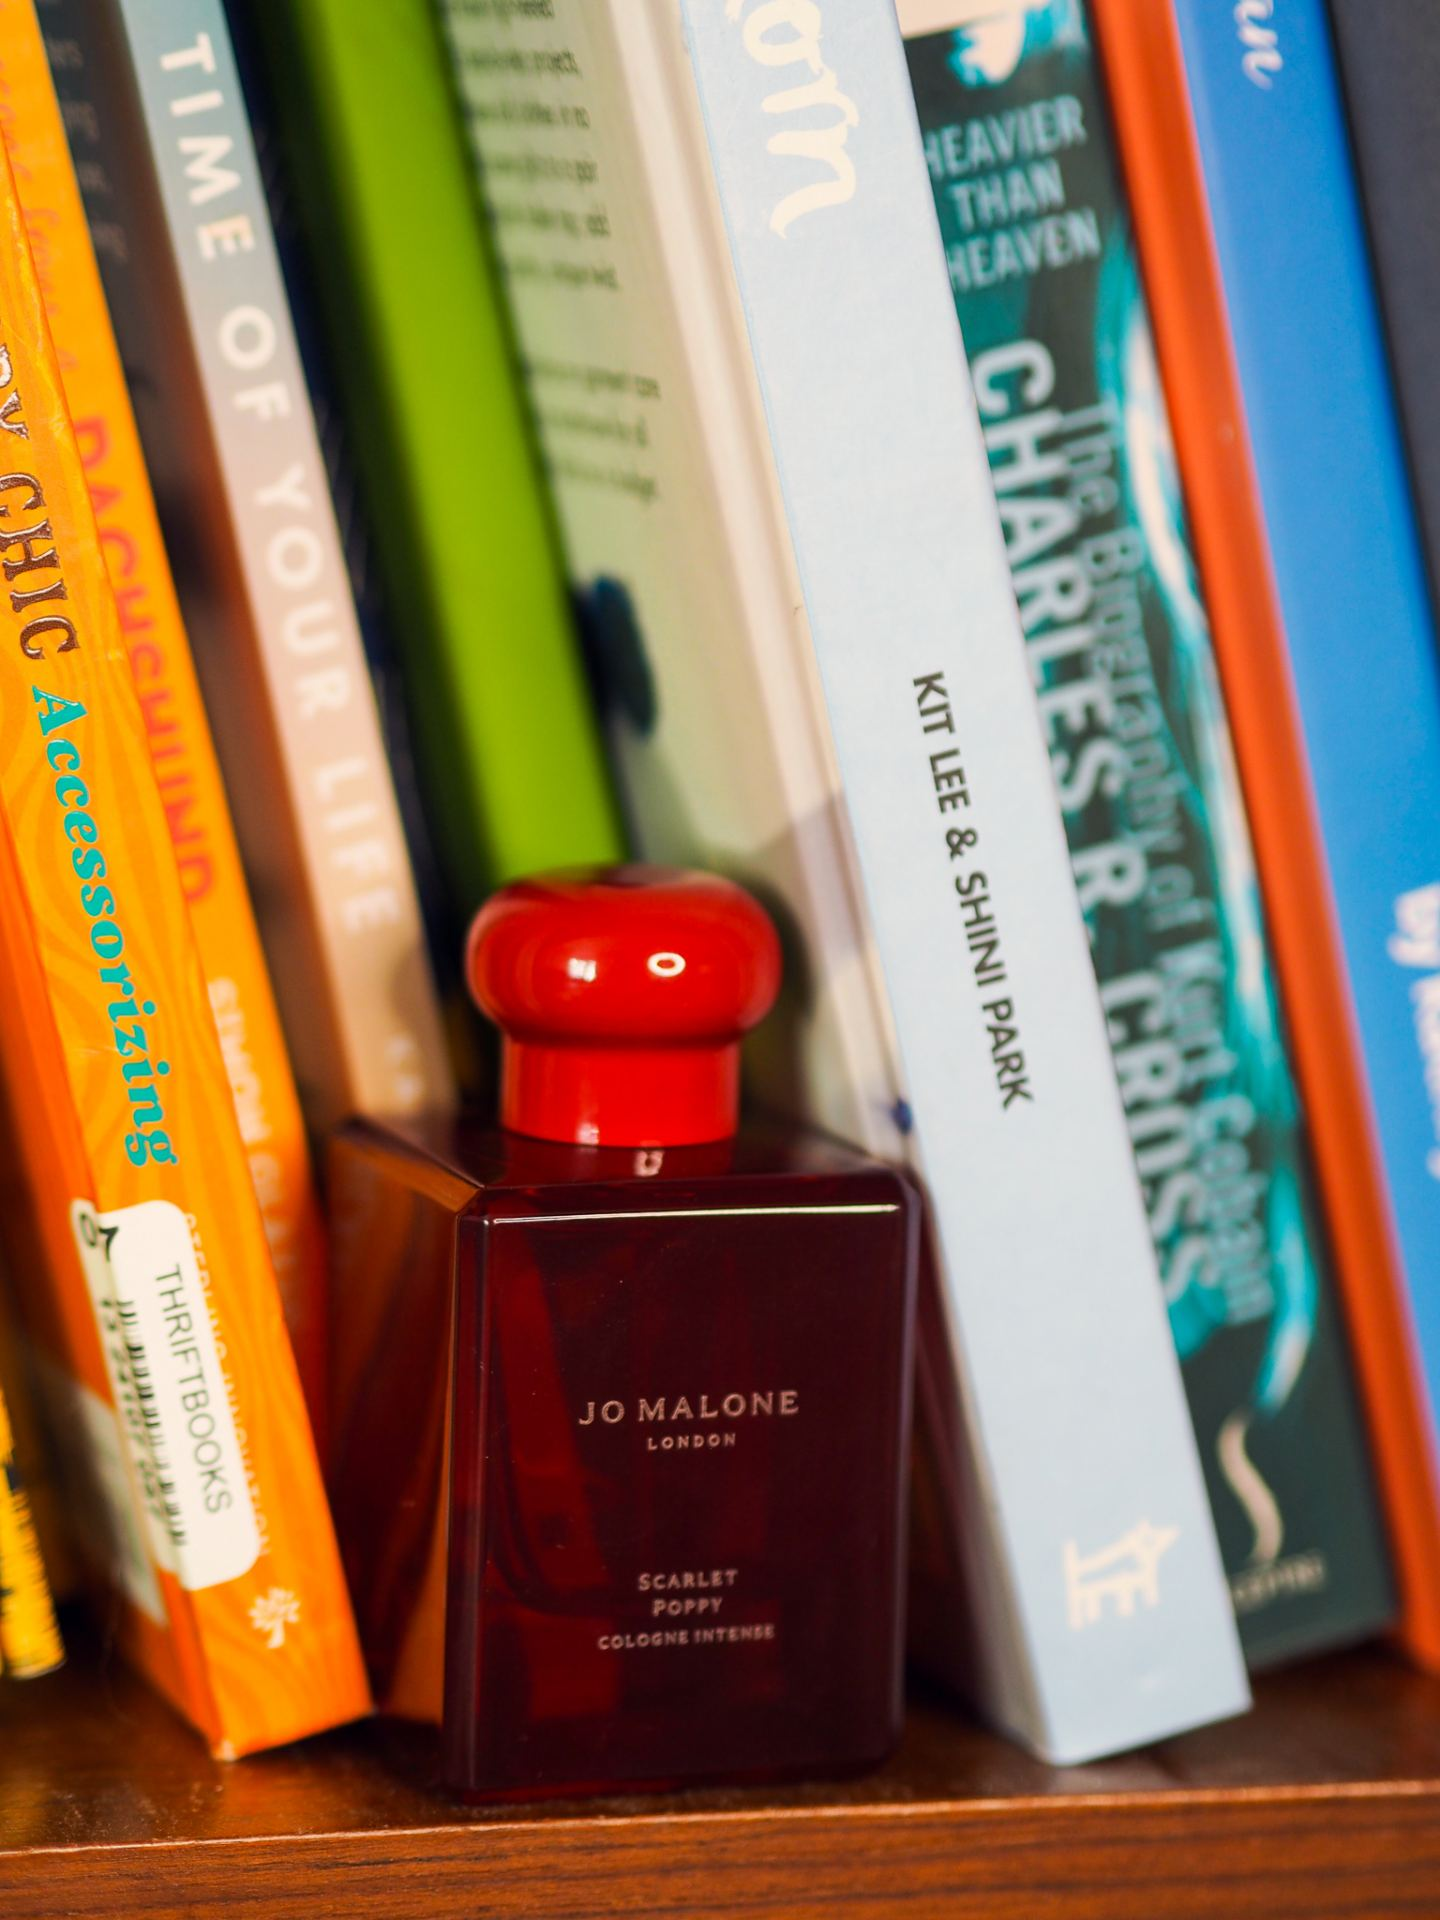 Jo Malone London 'Scarlet Poppy' Cologne Intense! OUT NOW!